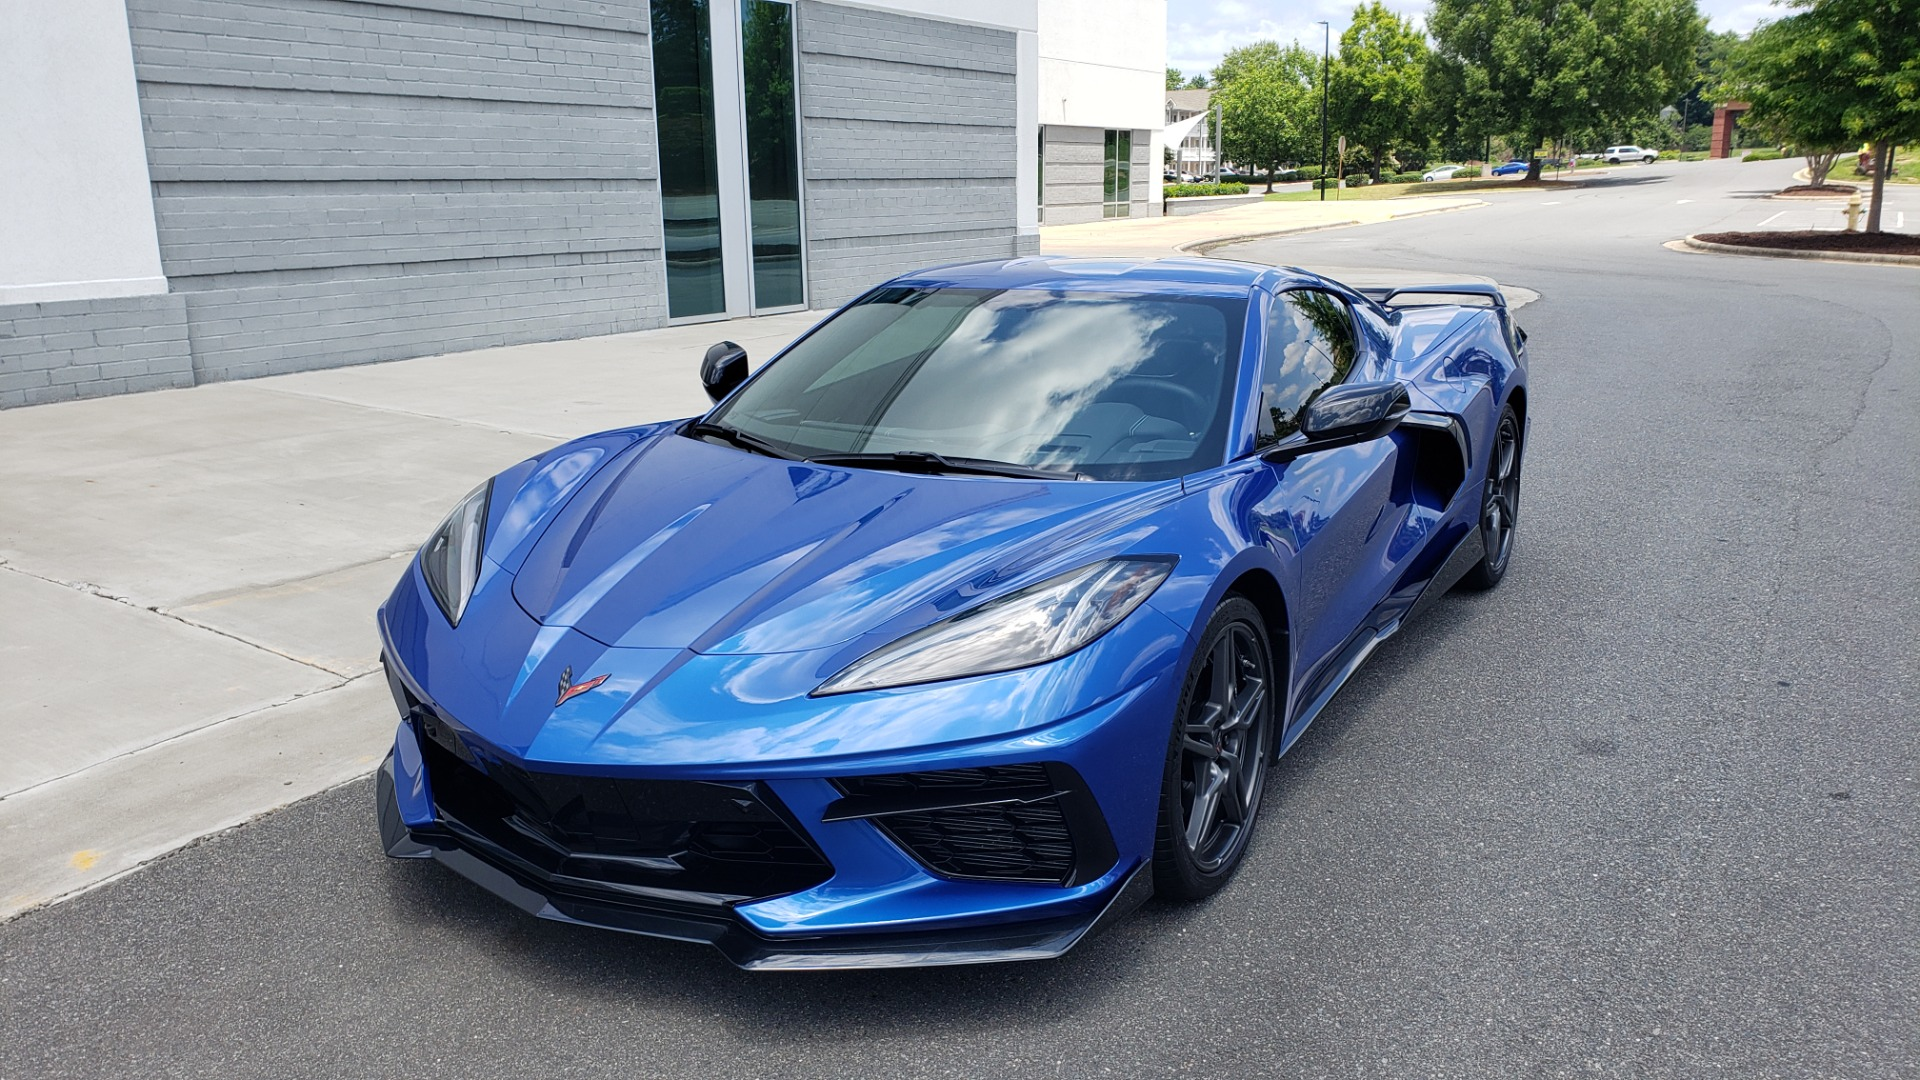 Used 2020 Chevrolet CORVETTE C8 STINGRAY COUPE 2LT / PERF & Z51 PKG / NAV / BOSE / 8-SPD AUTO / REARVIEW for sale Sold at Formula Imports in Charlotte NC 28227 3